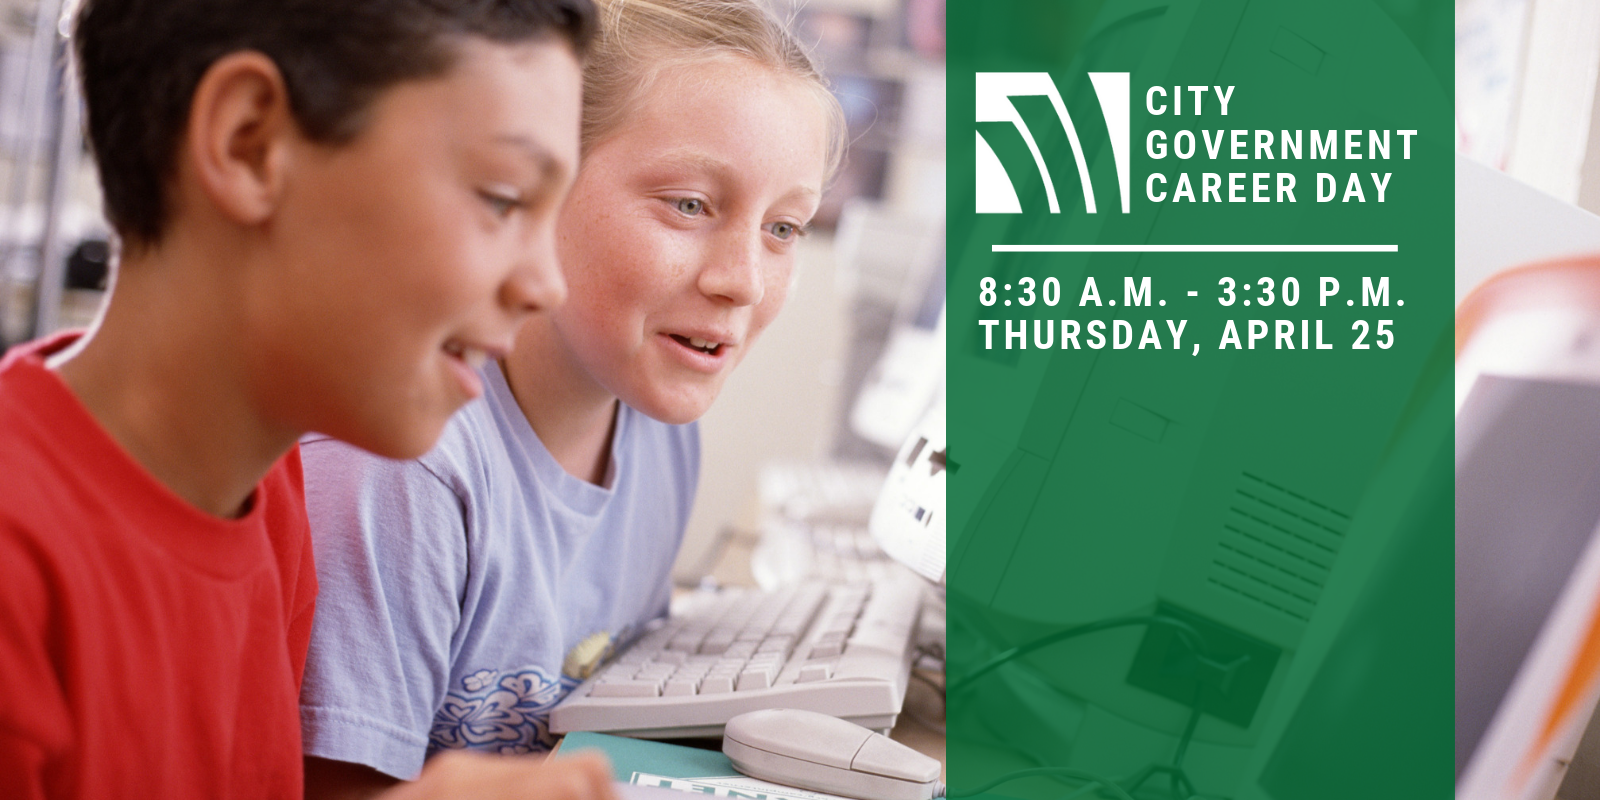 City Government Career Day Website Header